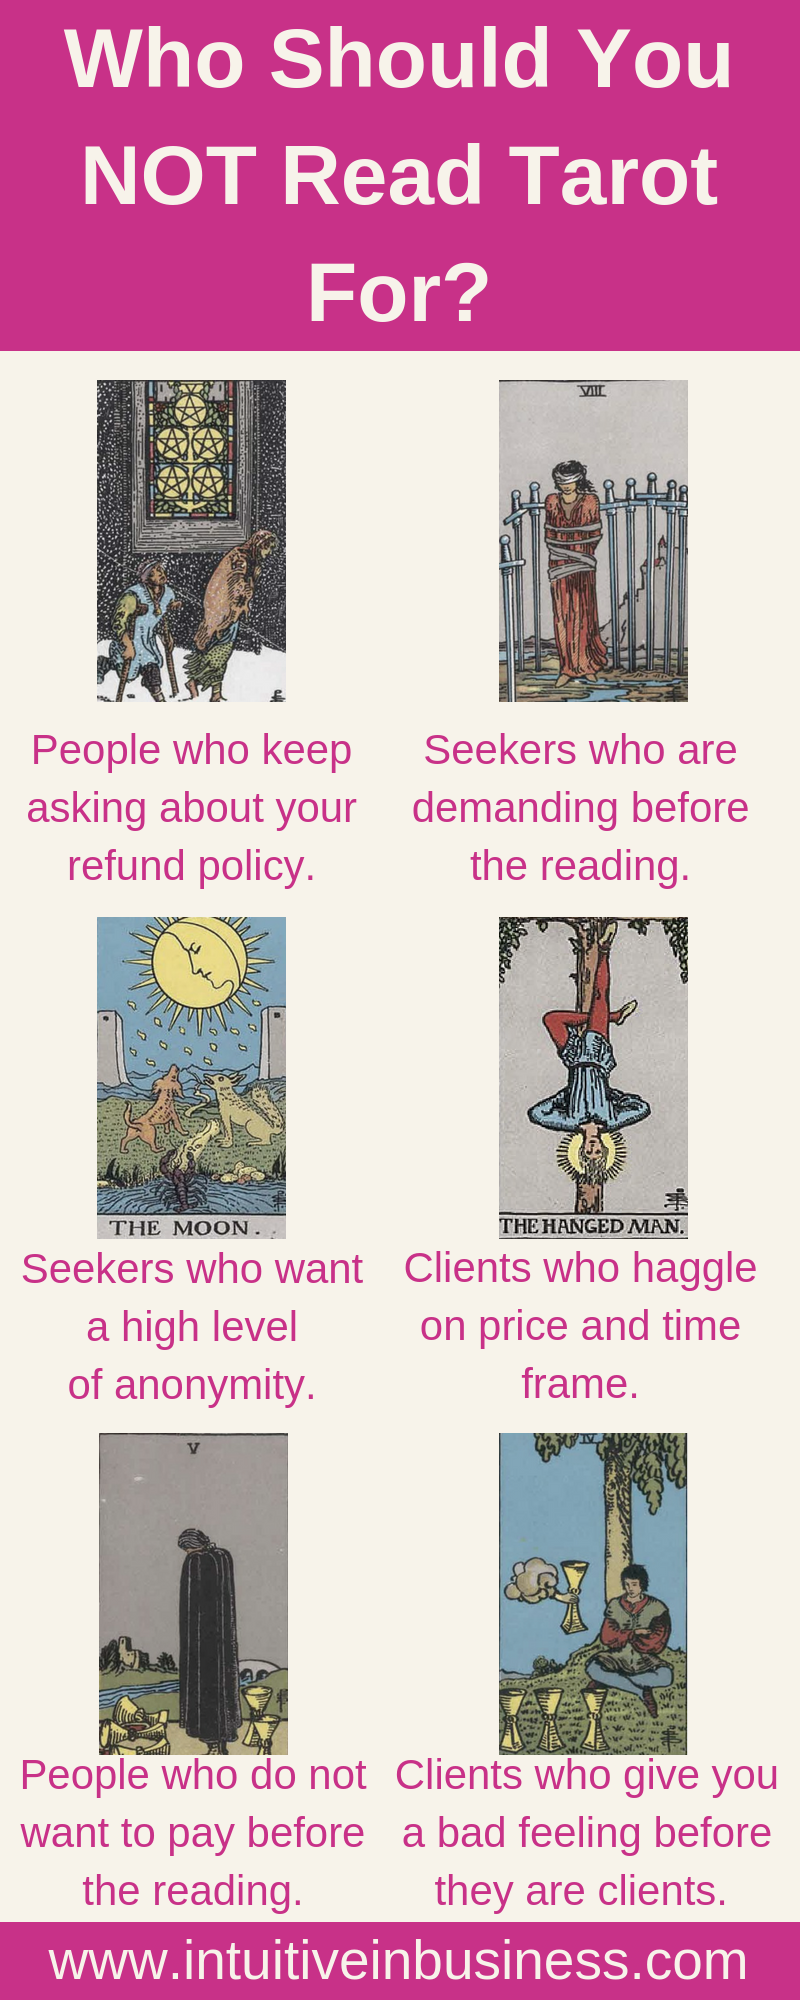 Who should you not read Tarot cards for? If you're reading cards or you are a psychic, reading professional is not the same as reading for free. You will get seekers who want to scam you. Here are the signs that you're beginning to get scared as a spiritual entrepreneur and how to avoid it. Deck is the Rider Waite Smith article by Intuitive in Business.